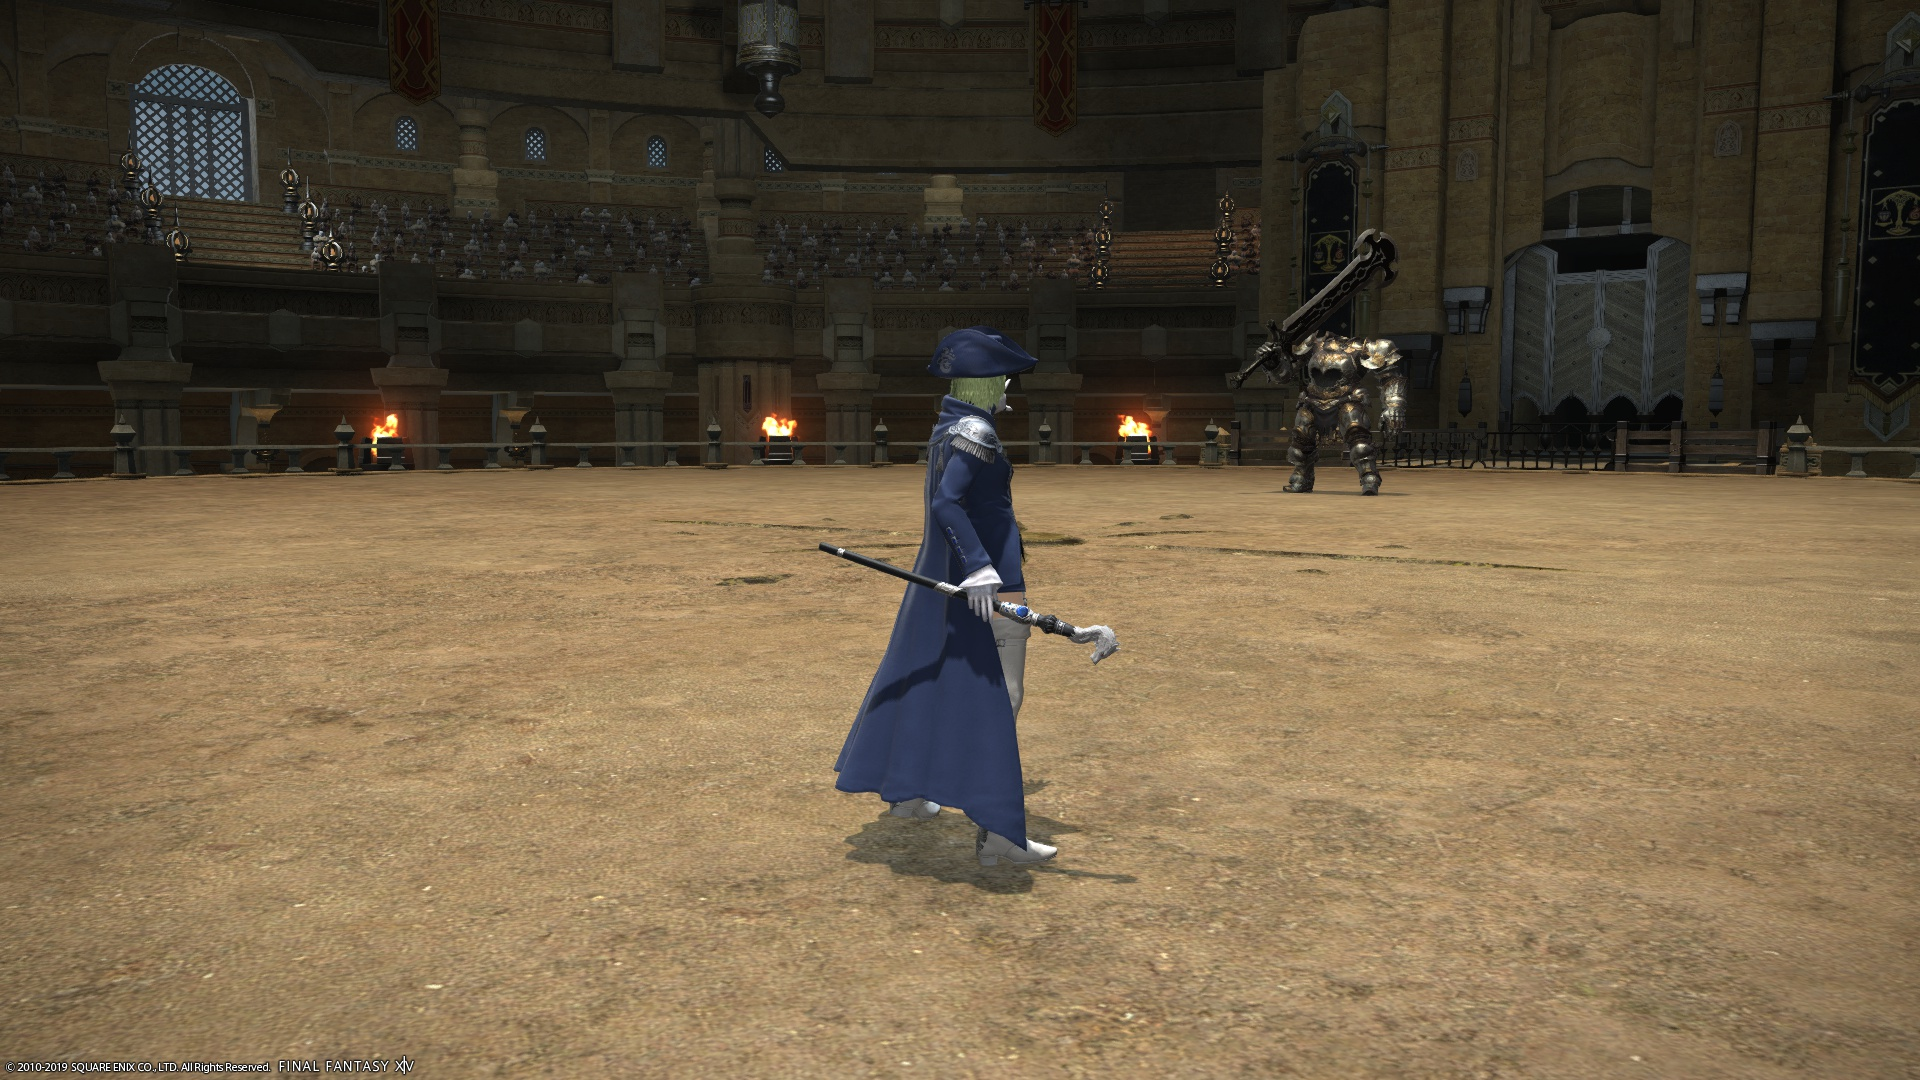 Patricia, as a Blue Mage, standing there with a cane ready to battle an Iron Giant.